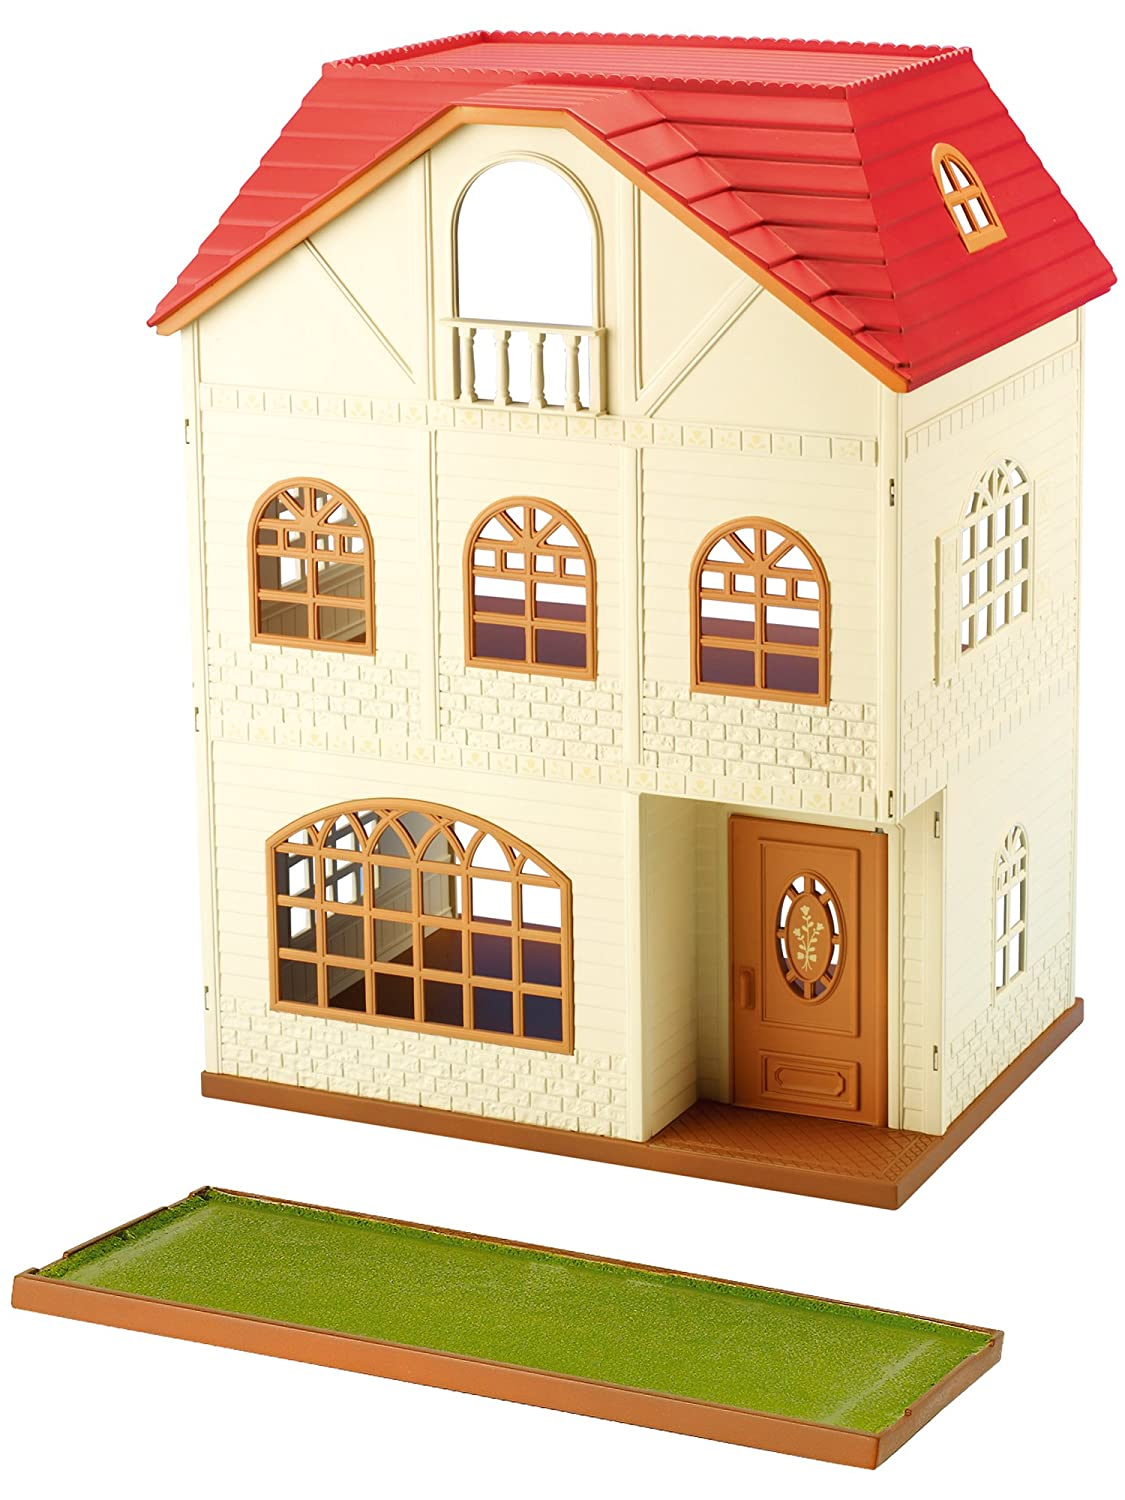 Sylvanian families 2745 dolls and accessories house with 3 stories multicolor amazon co uk toys games